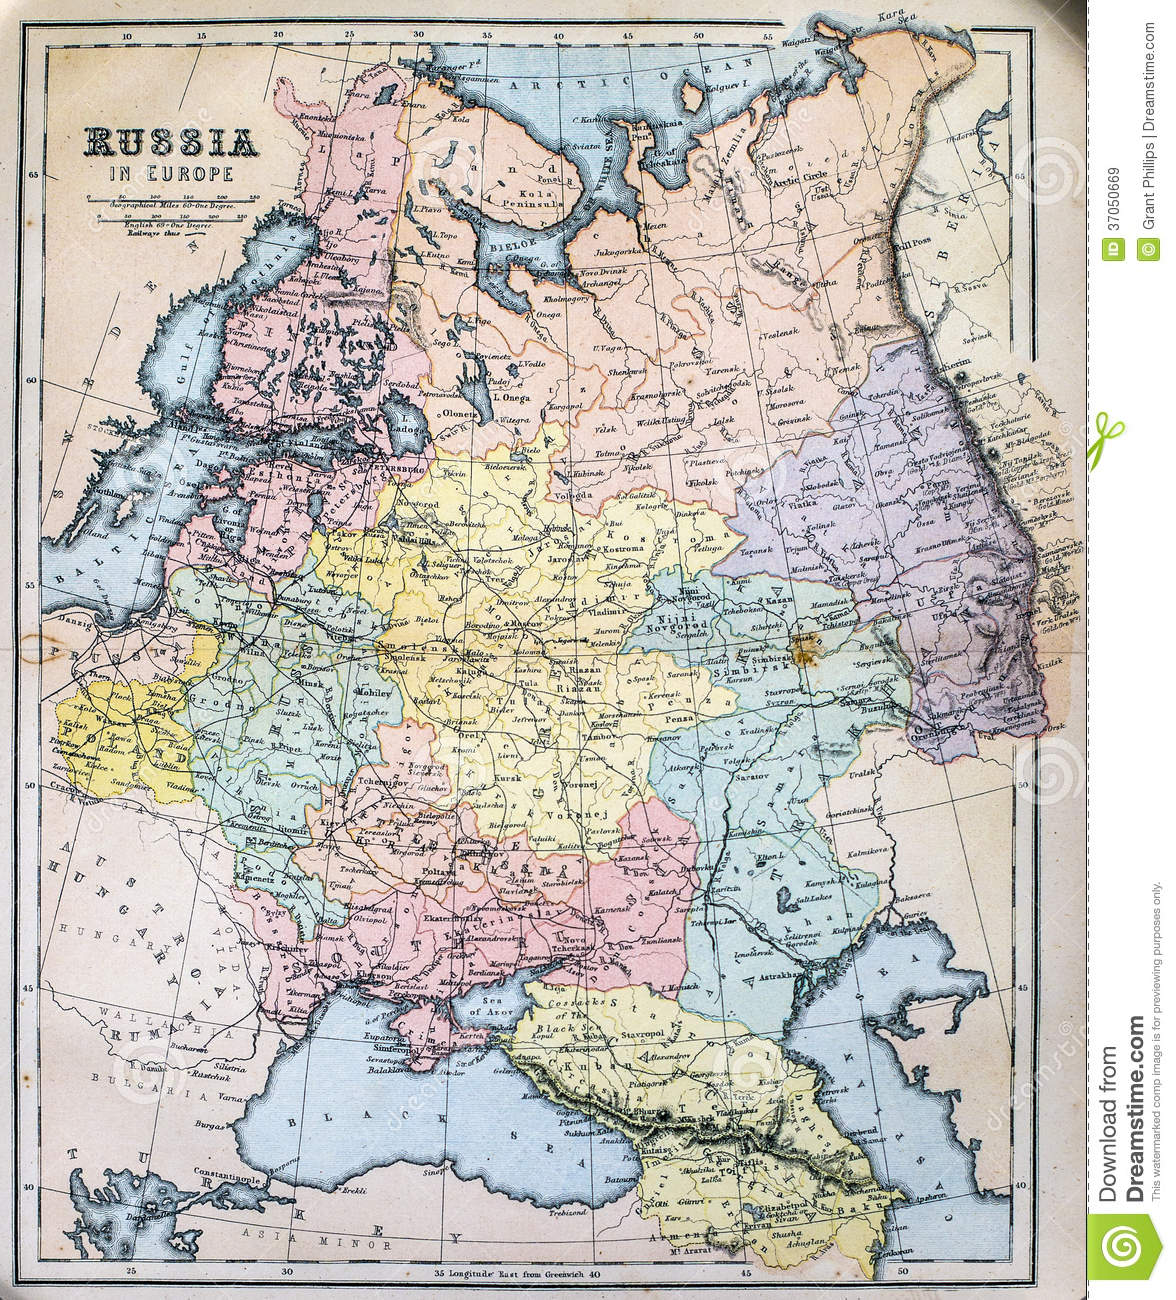 Antique Map Of Russia In Europe Royalty Free Images Image – Europe Map Russia